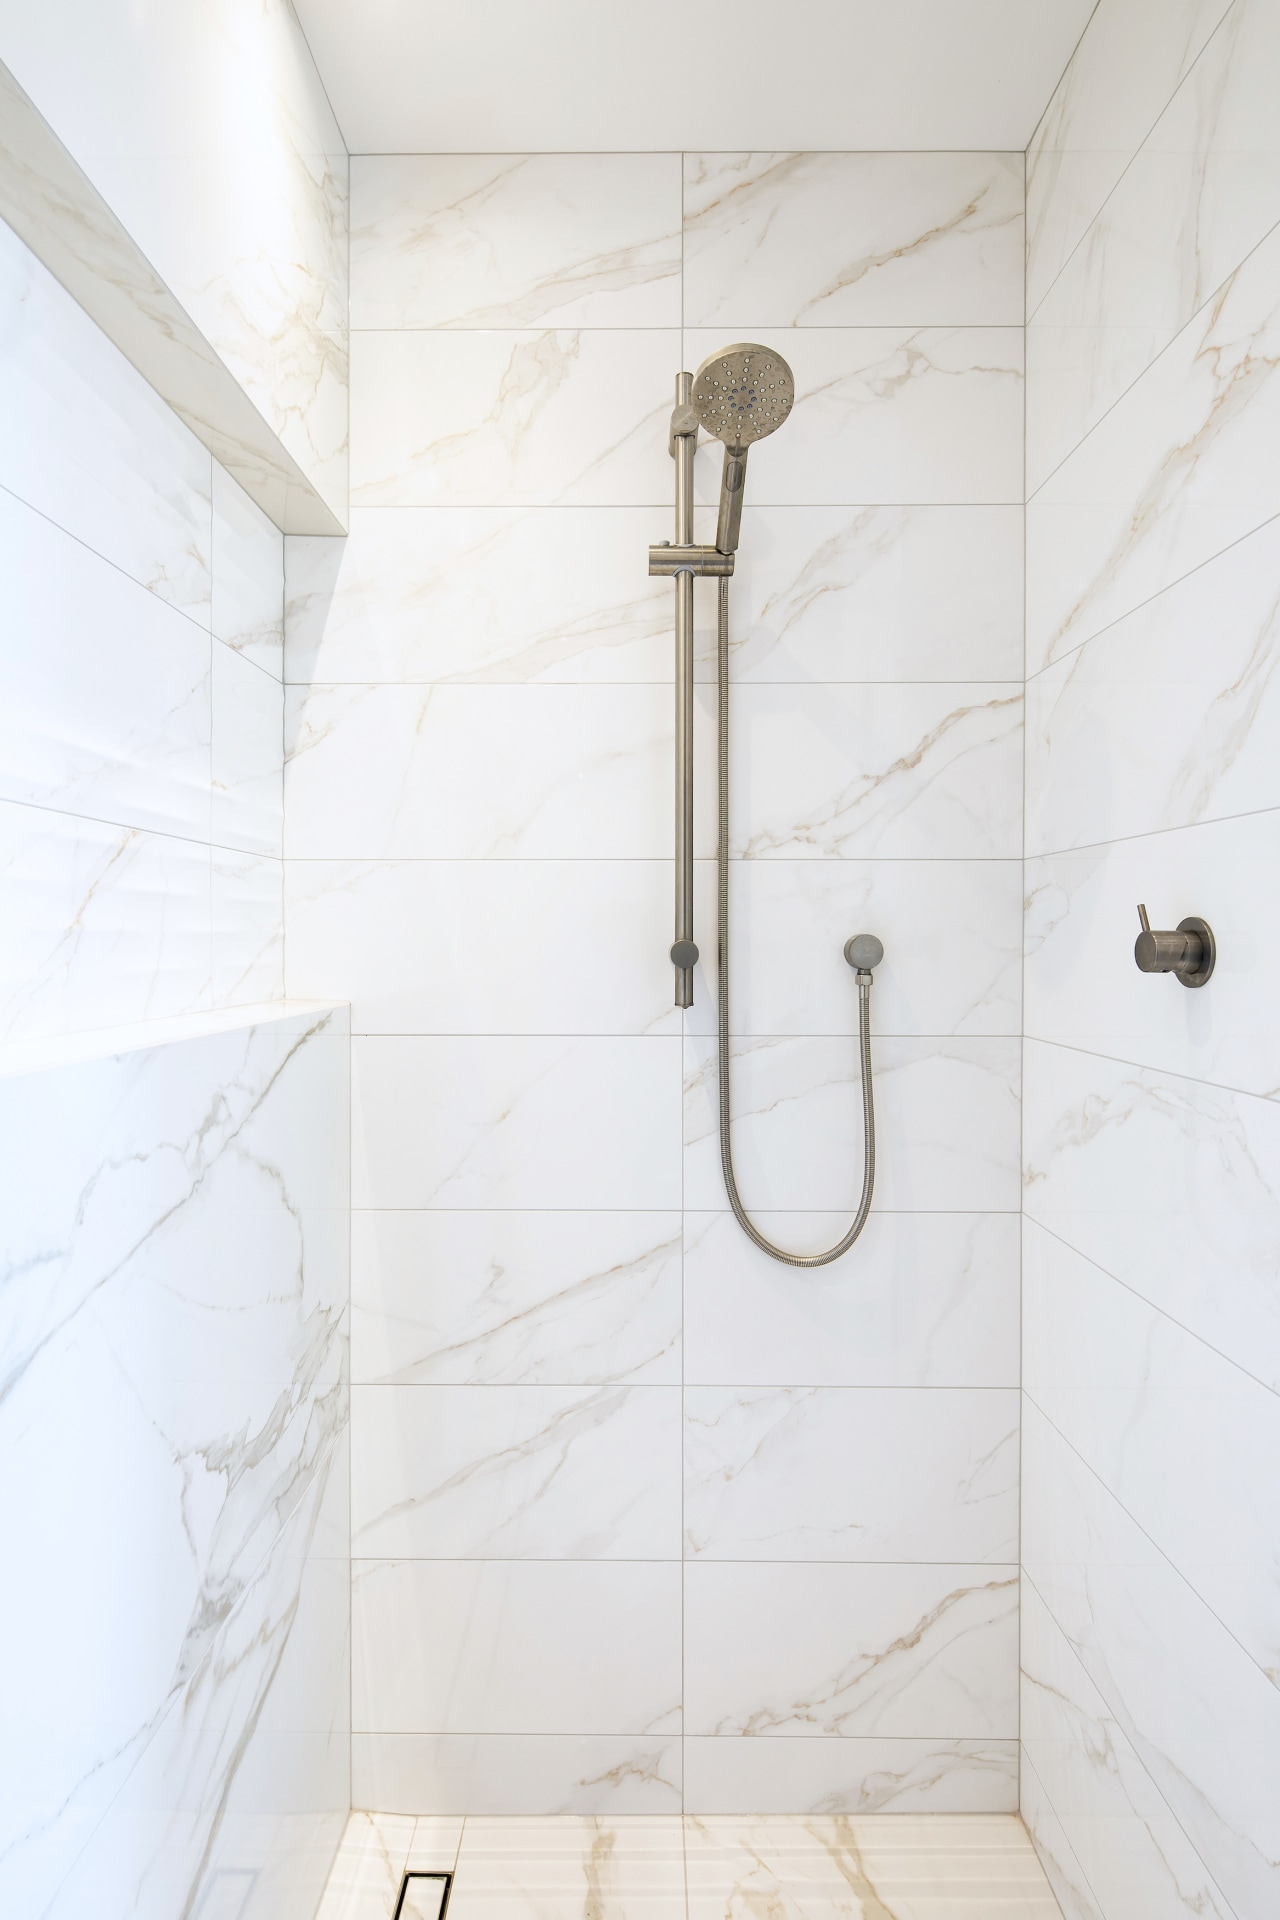 The long custom shower stall includes a soap